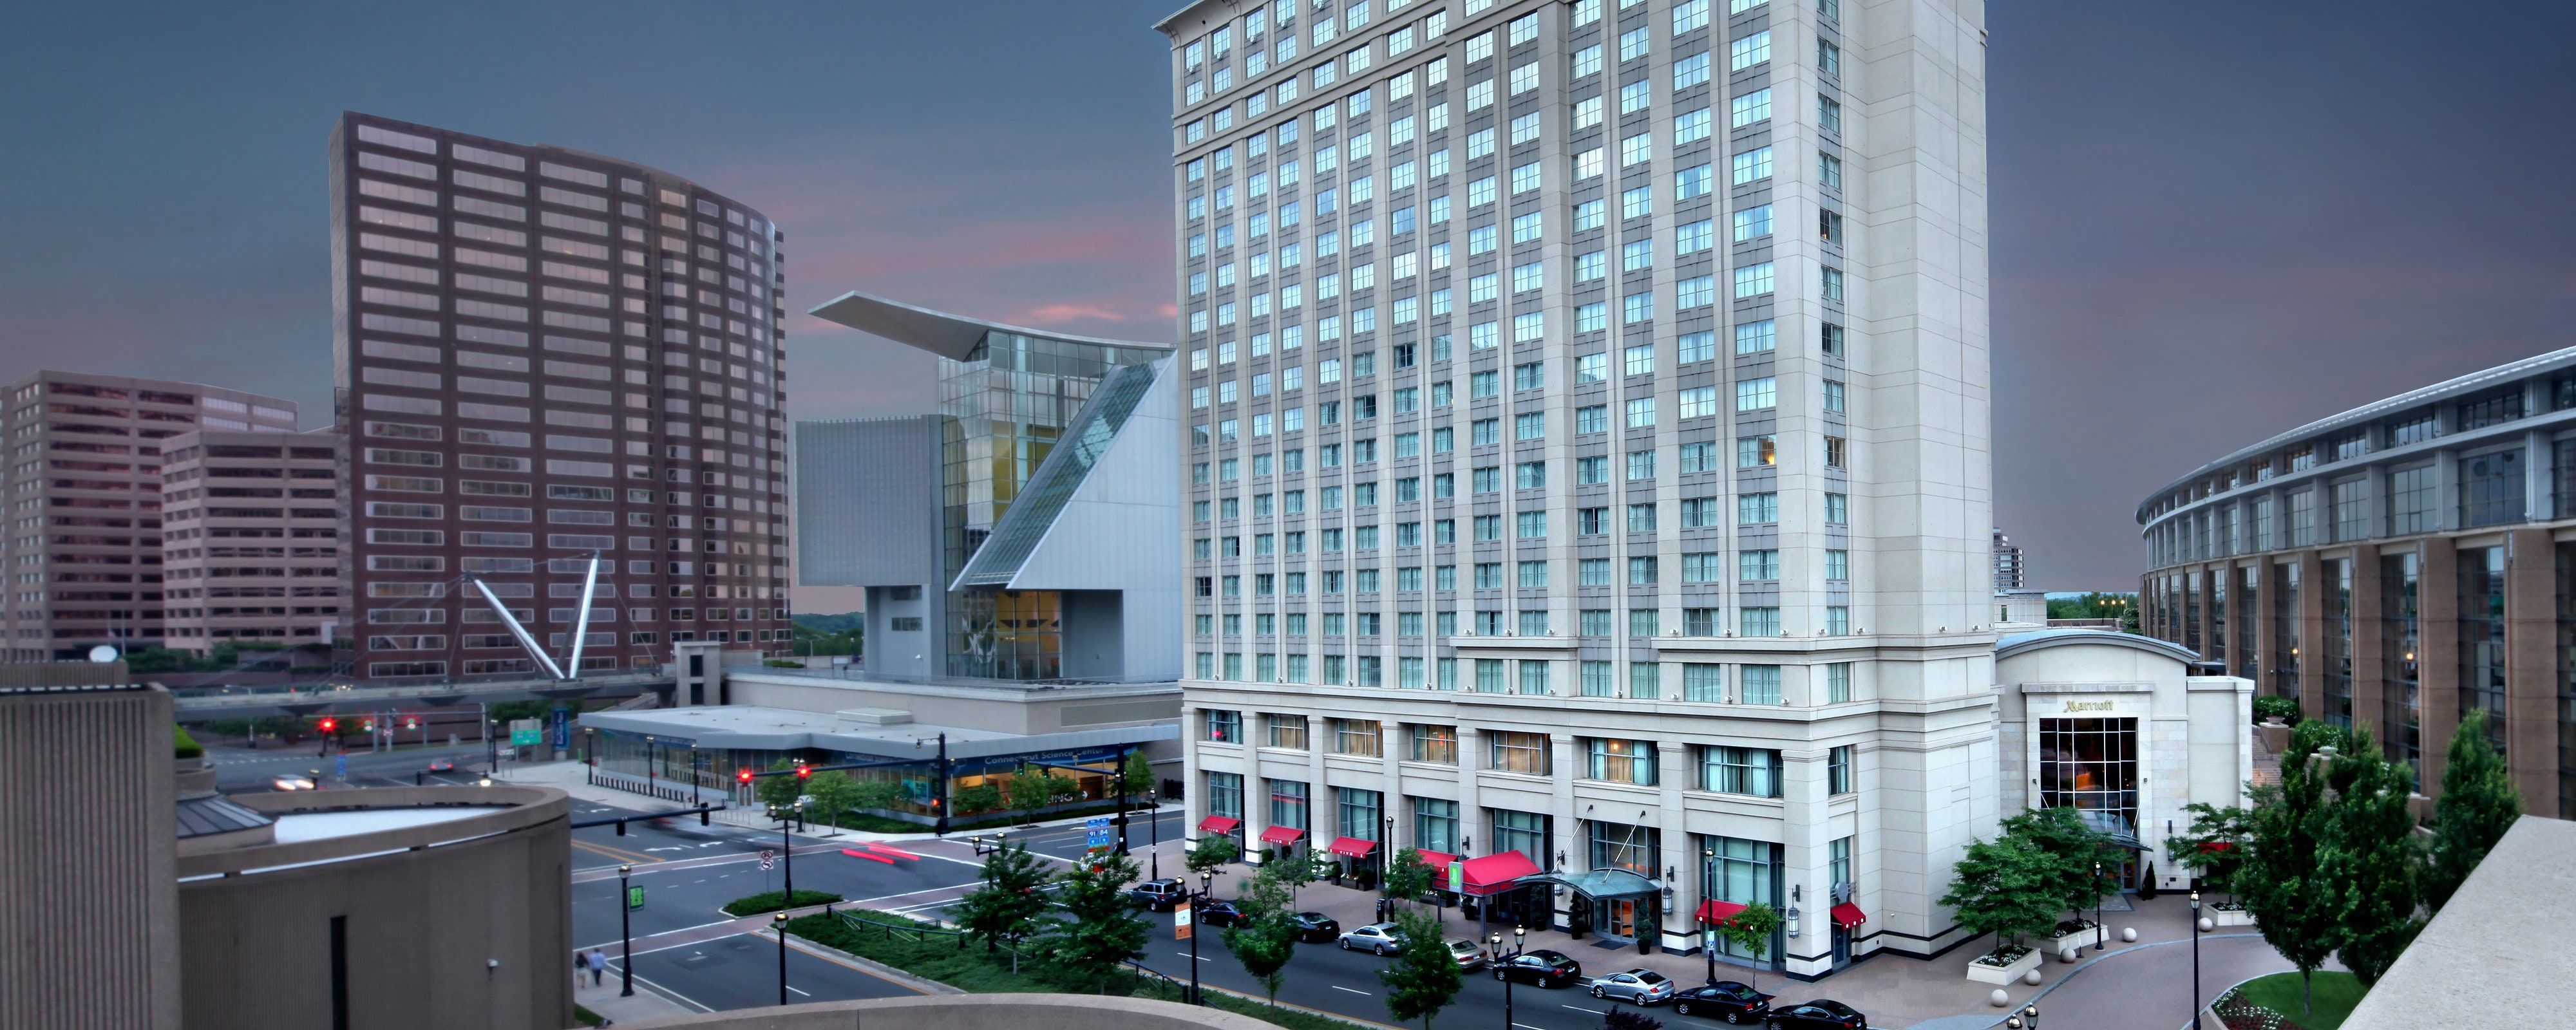 Stay Fit On Your Hartford Vacation | Hartford Marriott Downtown ...